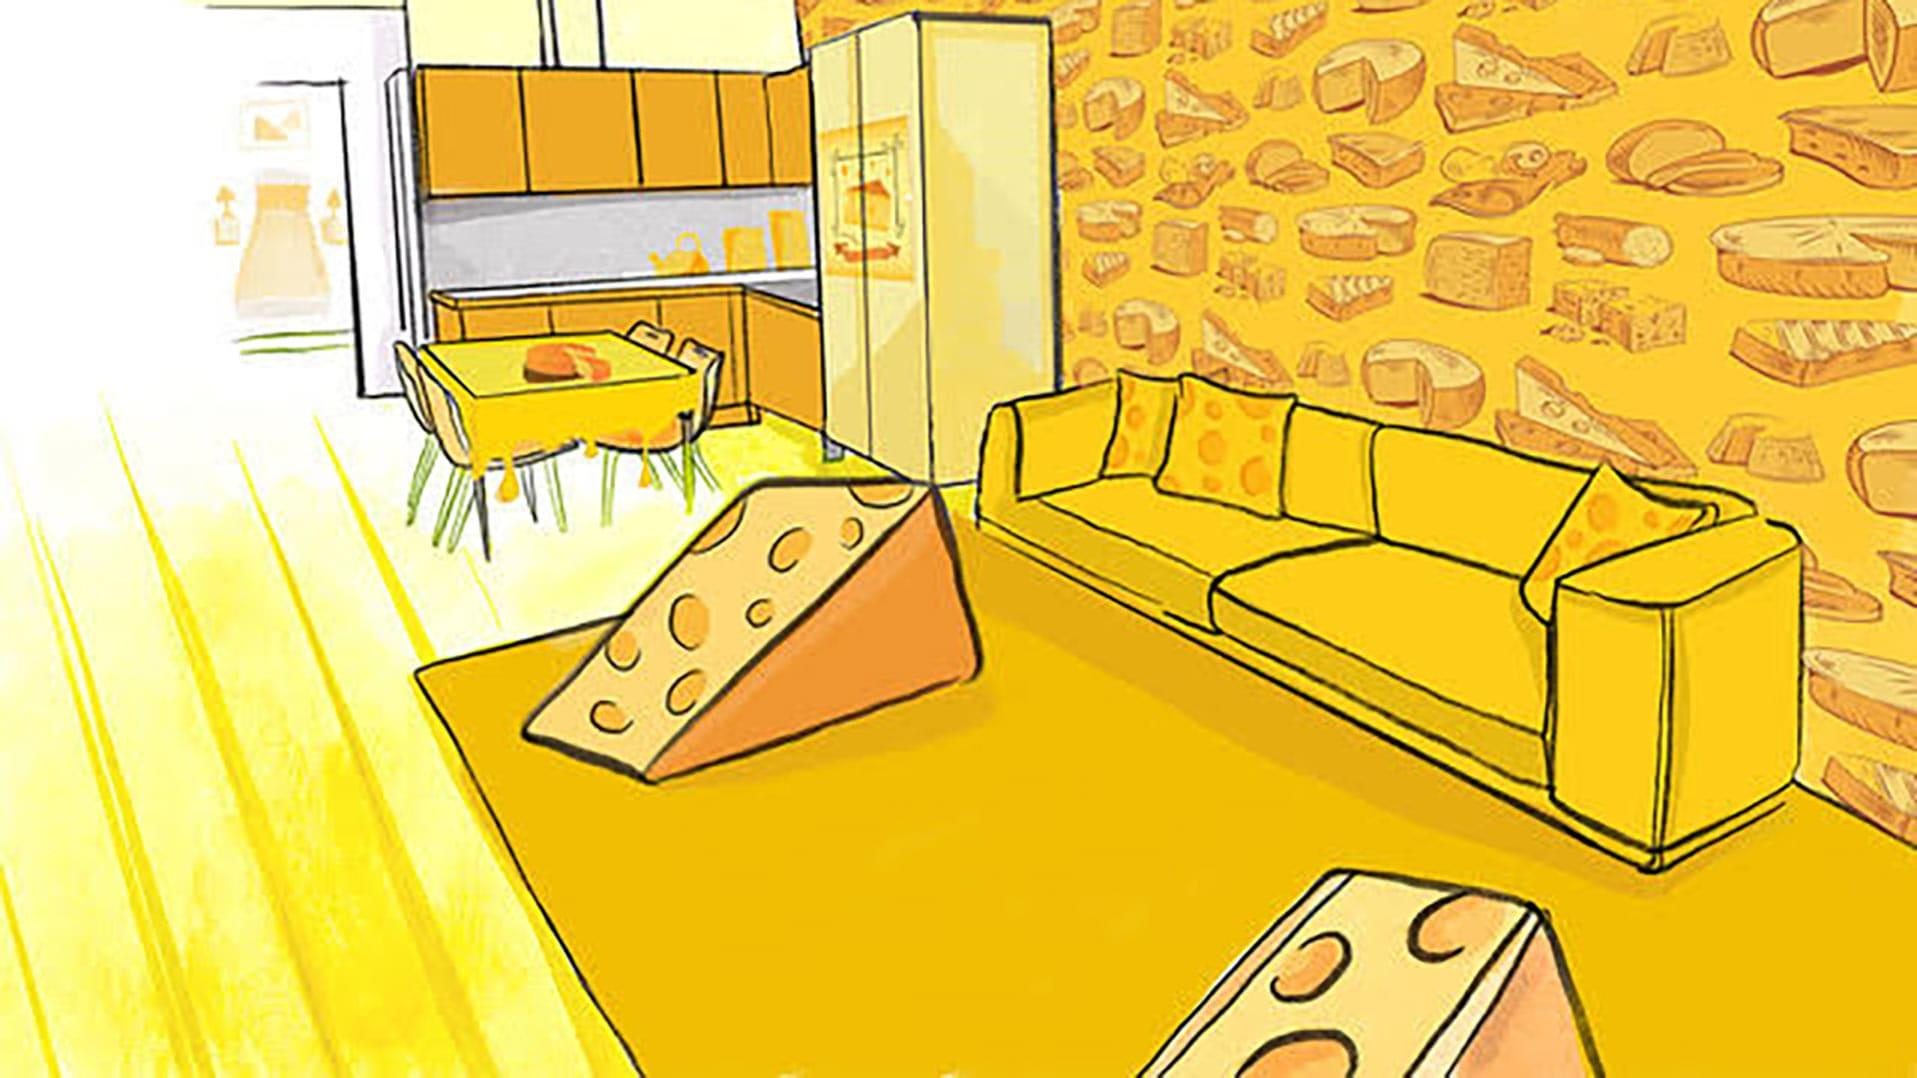 Cheese Hotel Room